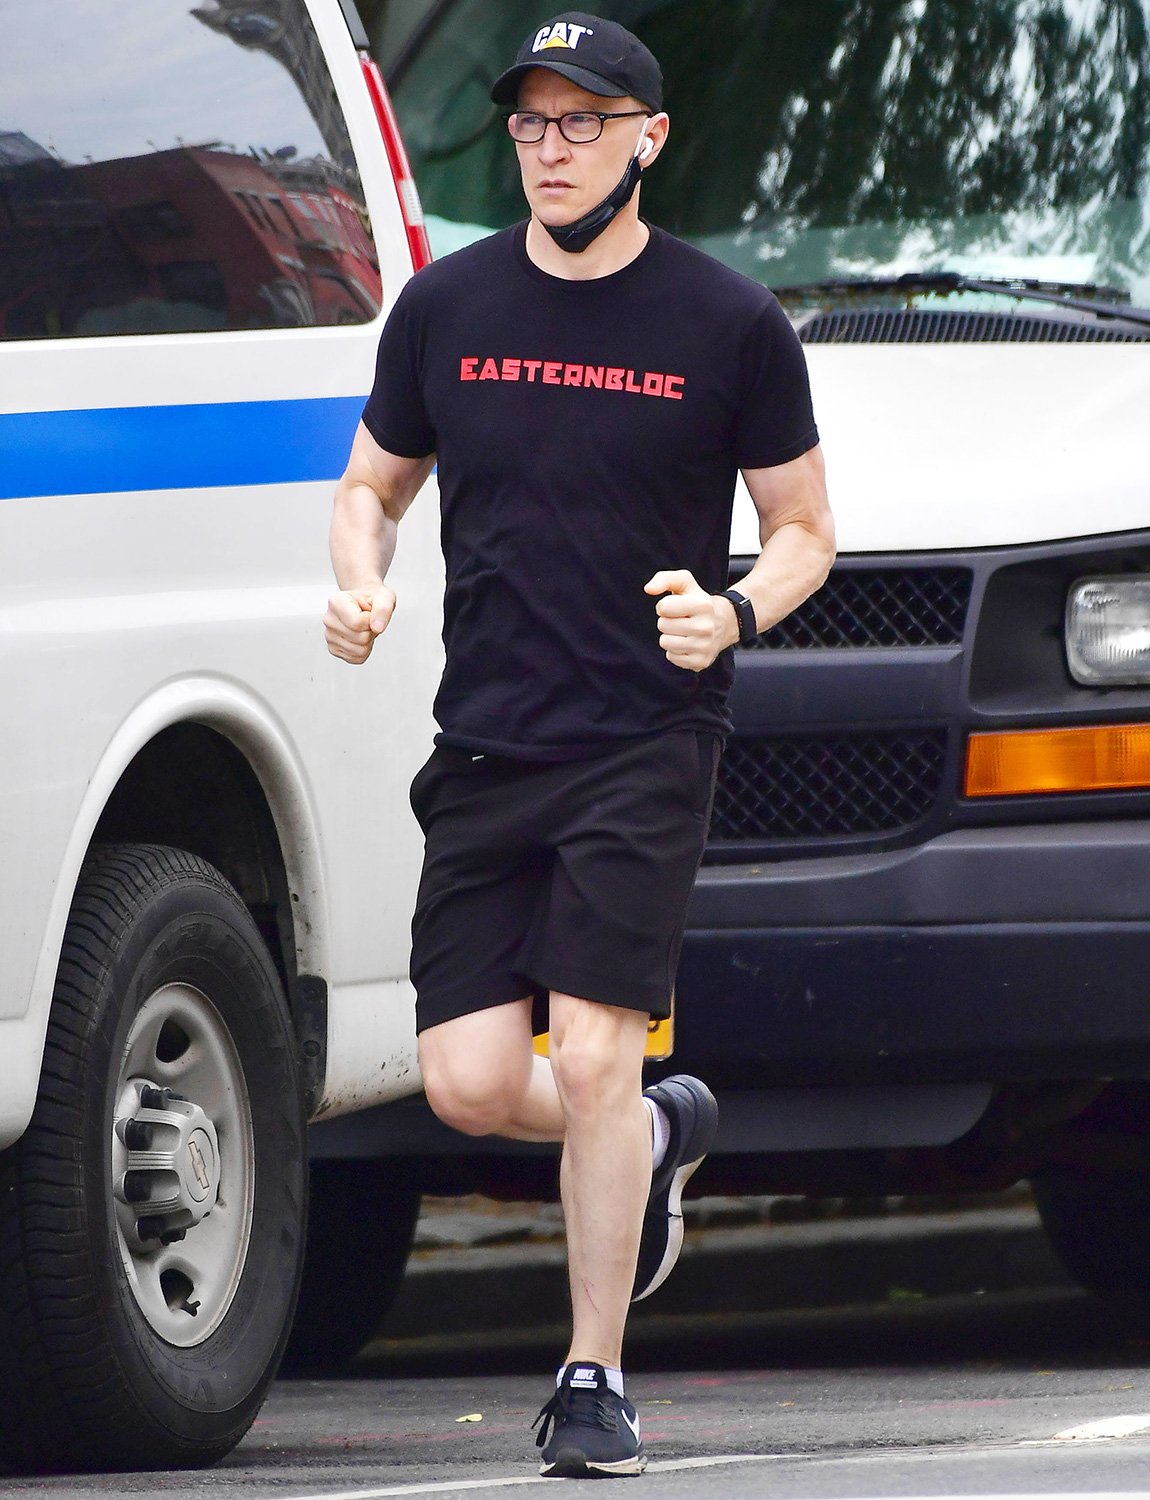 Anderson Cooper Steps Out For a Jog on His Birthday in New York City